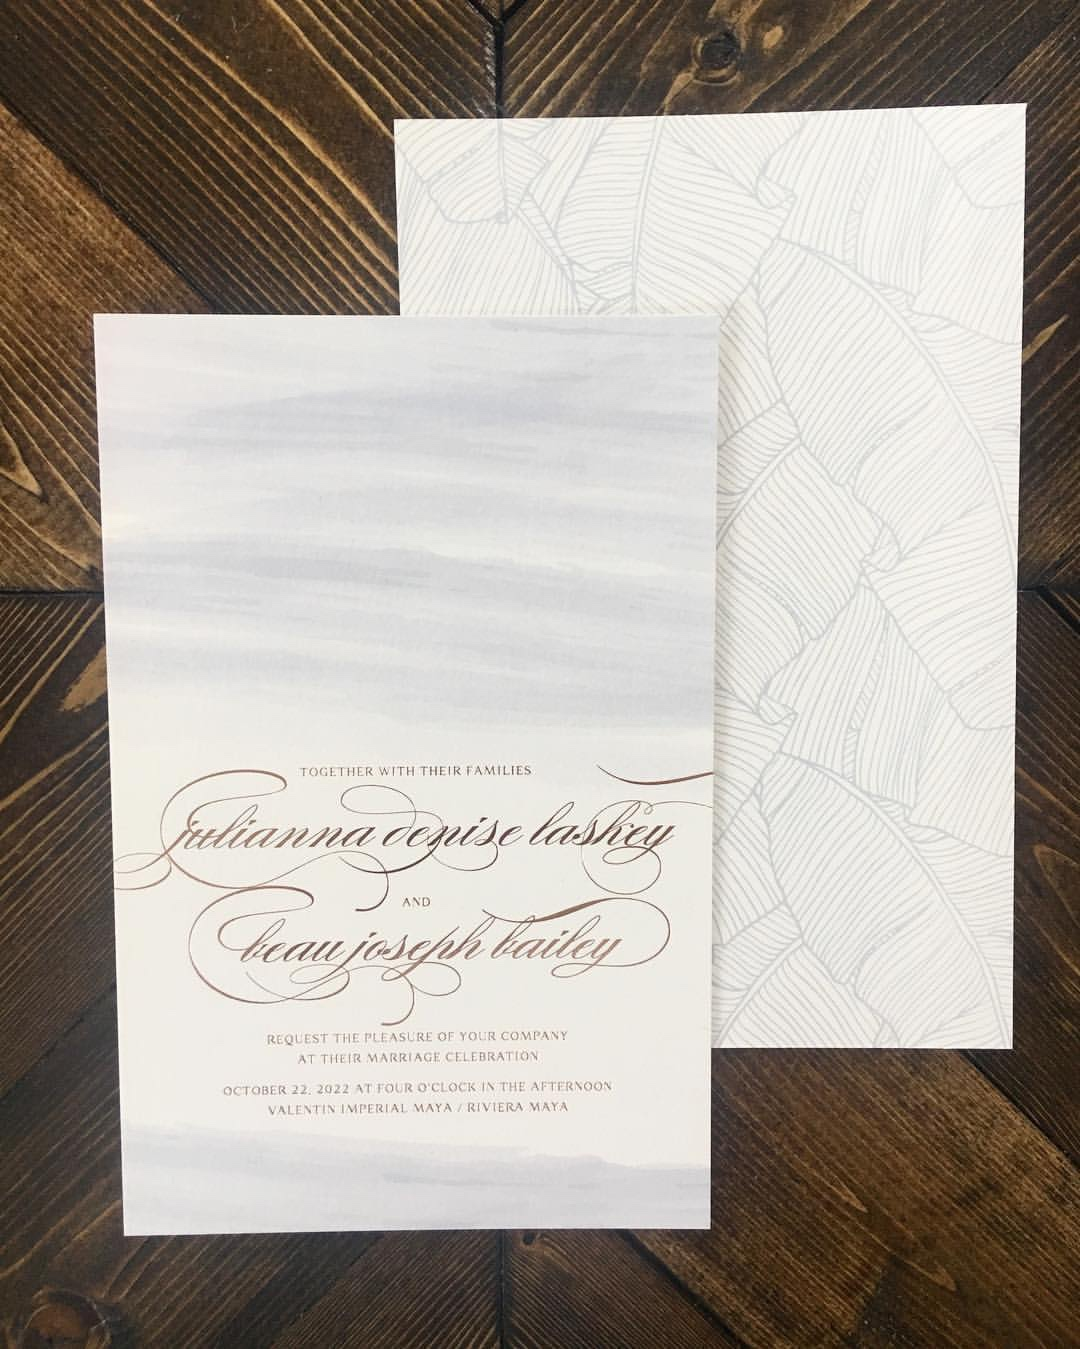 Pretty pale watercolor background with elegant gold foil text on this luxury wedding invitation